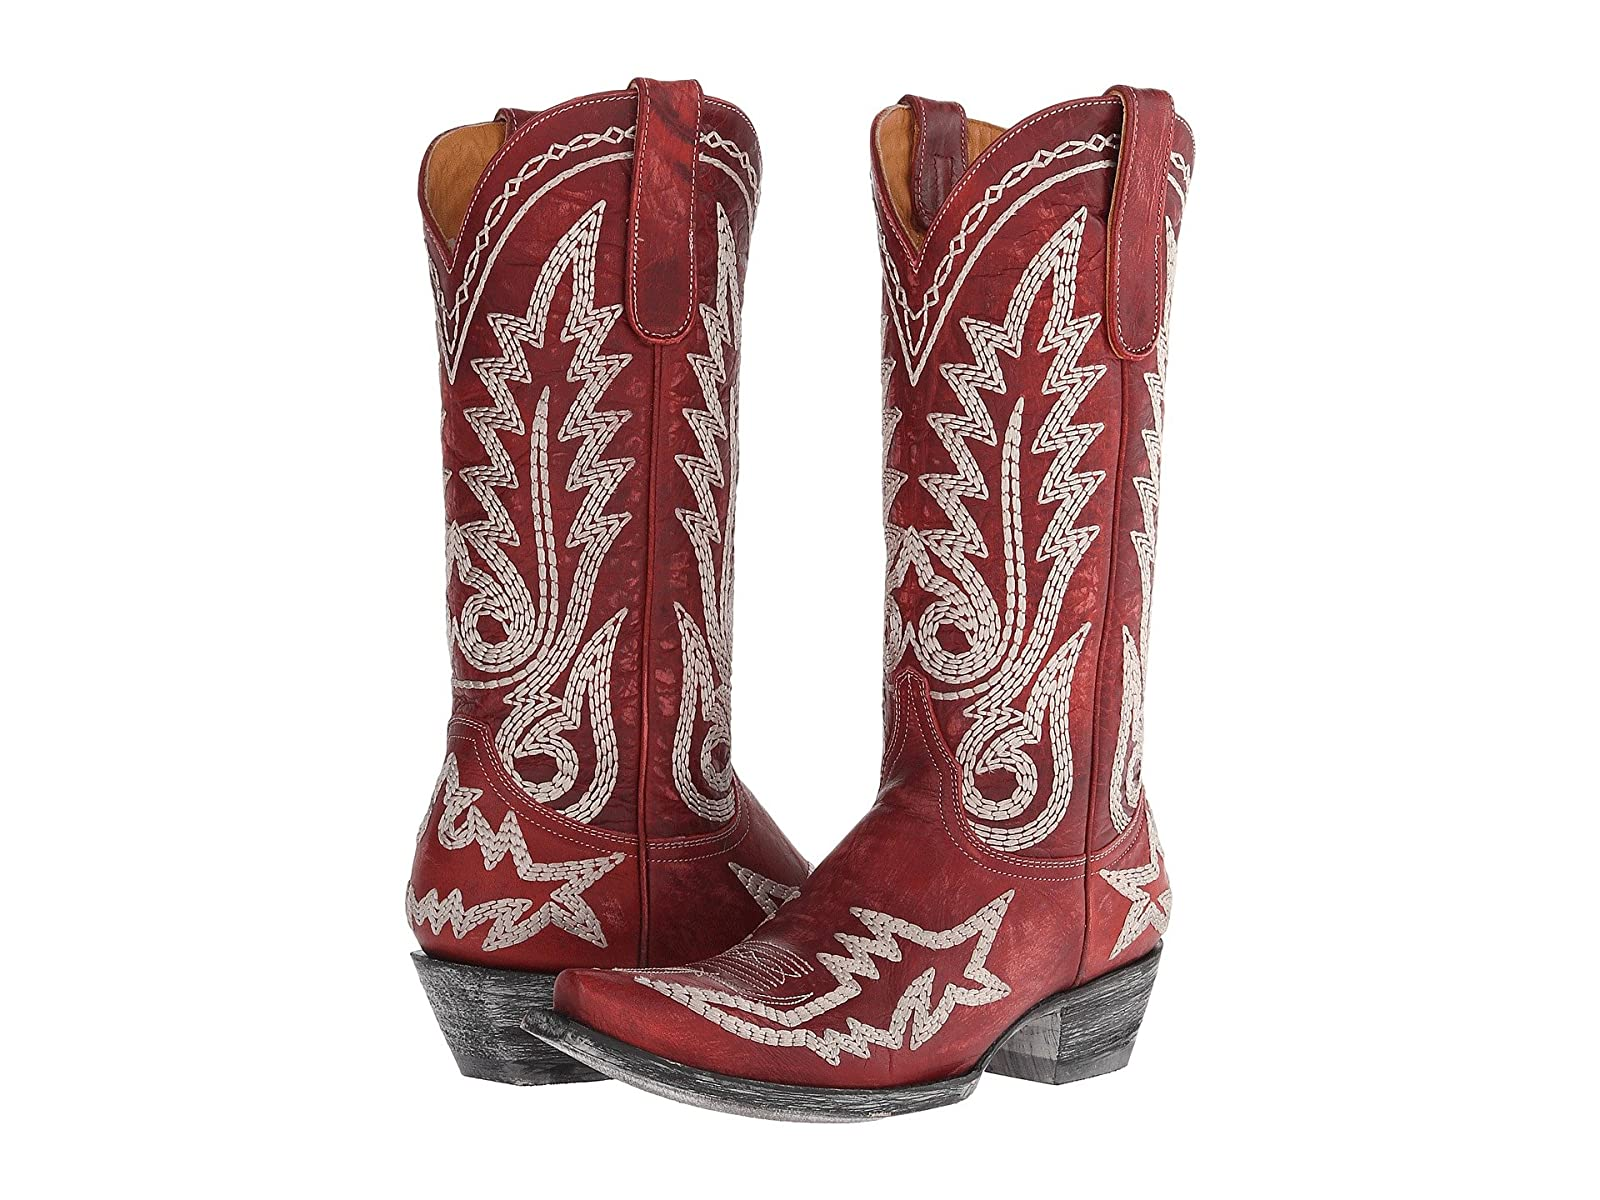 Old Gringo Nevada HeavyCheap and distinctive eye-catching shoes